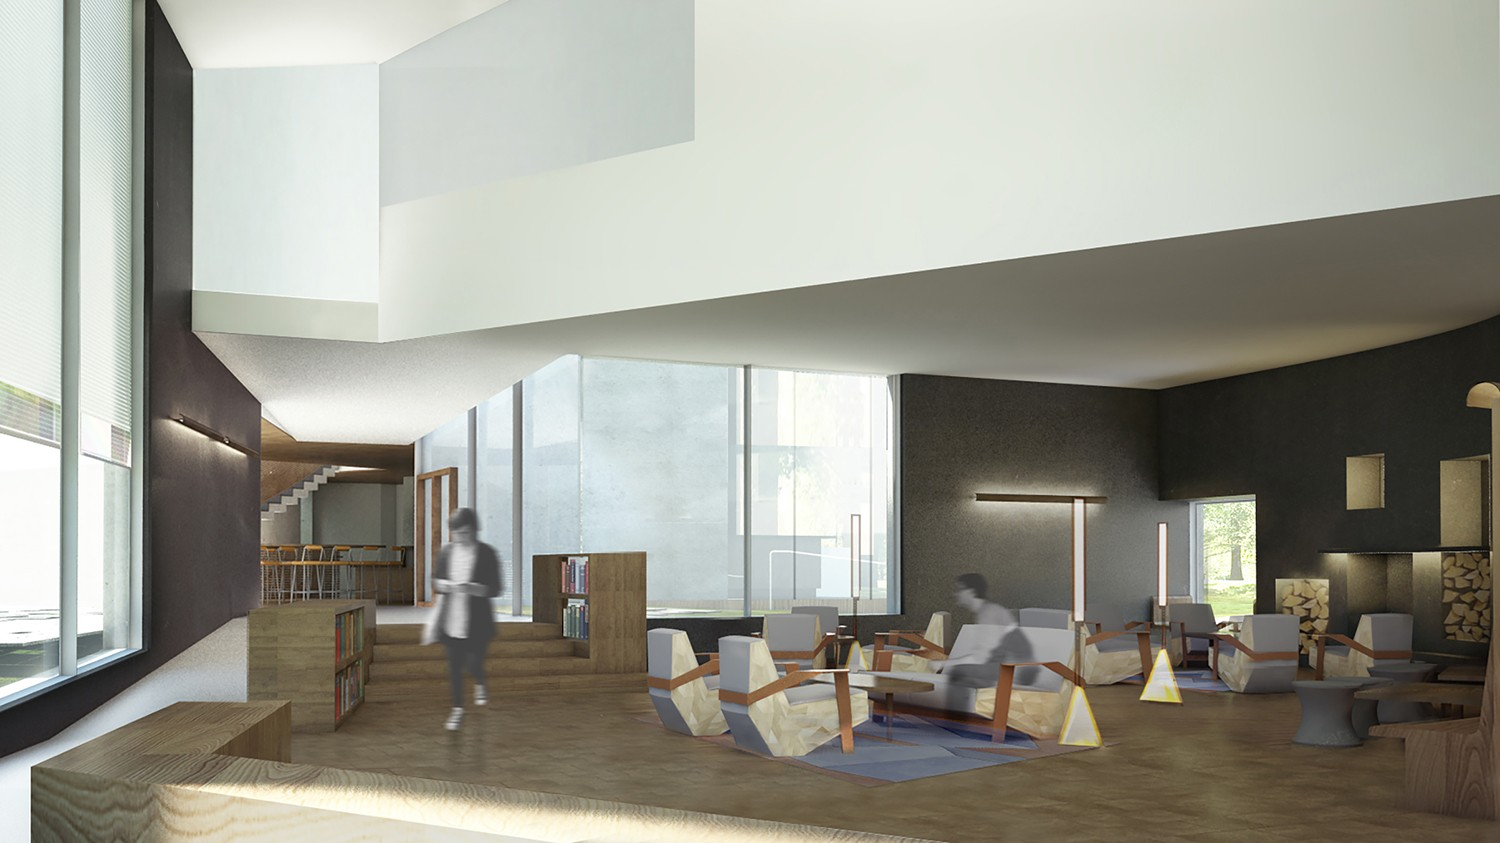 https://stevenholl.sfo2.digitaloceanspaces.com/uploads/projects/project-images/StevenHollArchitects_IAS_LivingRoom_WH.jpg